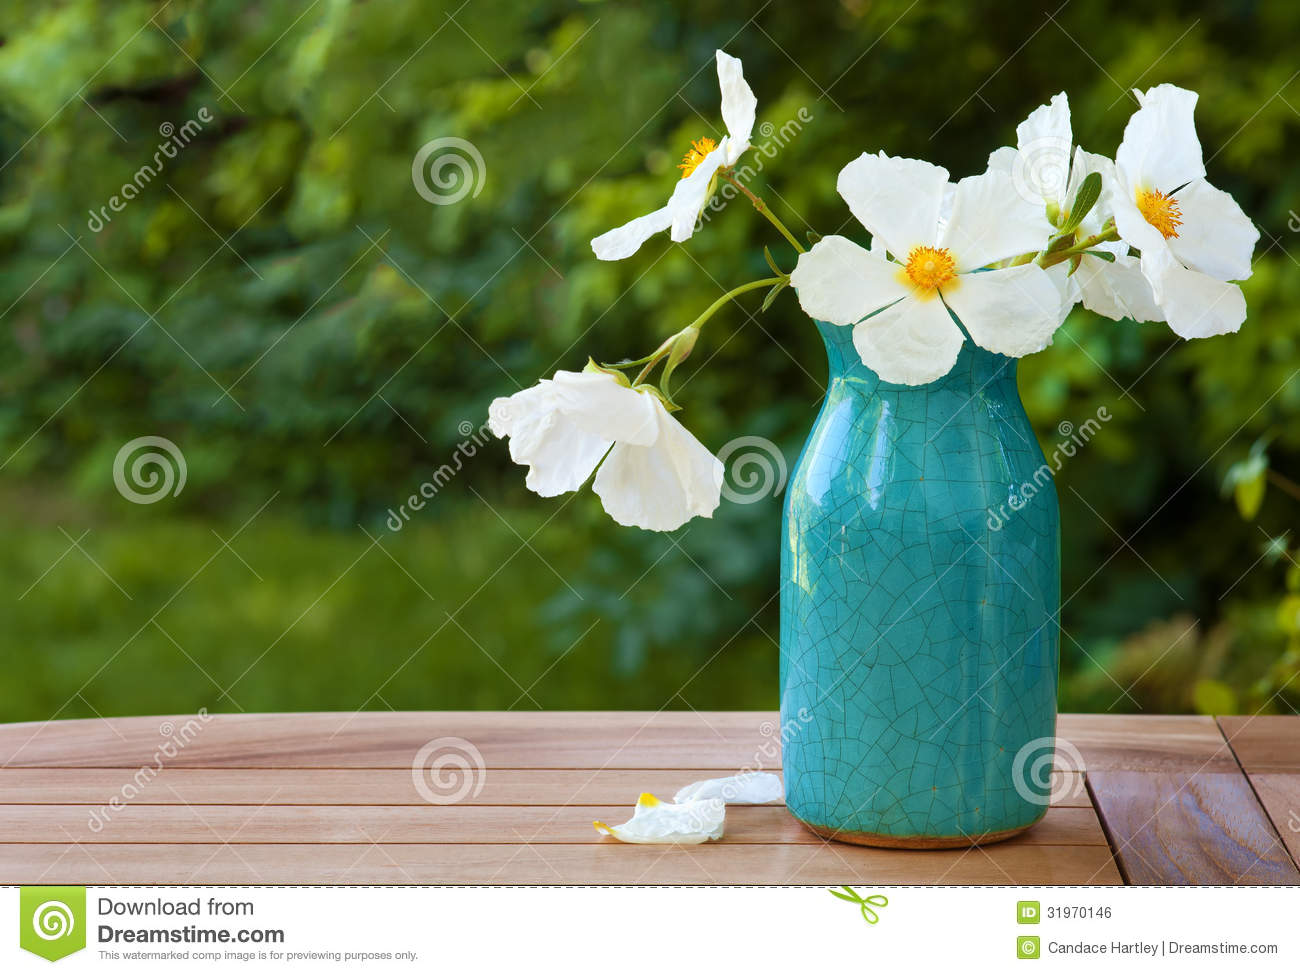 White Rock Rose Blossoms In A Blue Crazed Vase On Wooden Table Stock